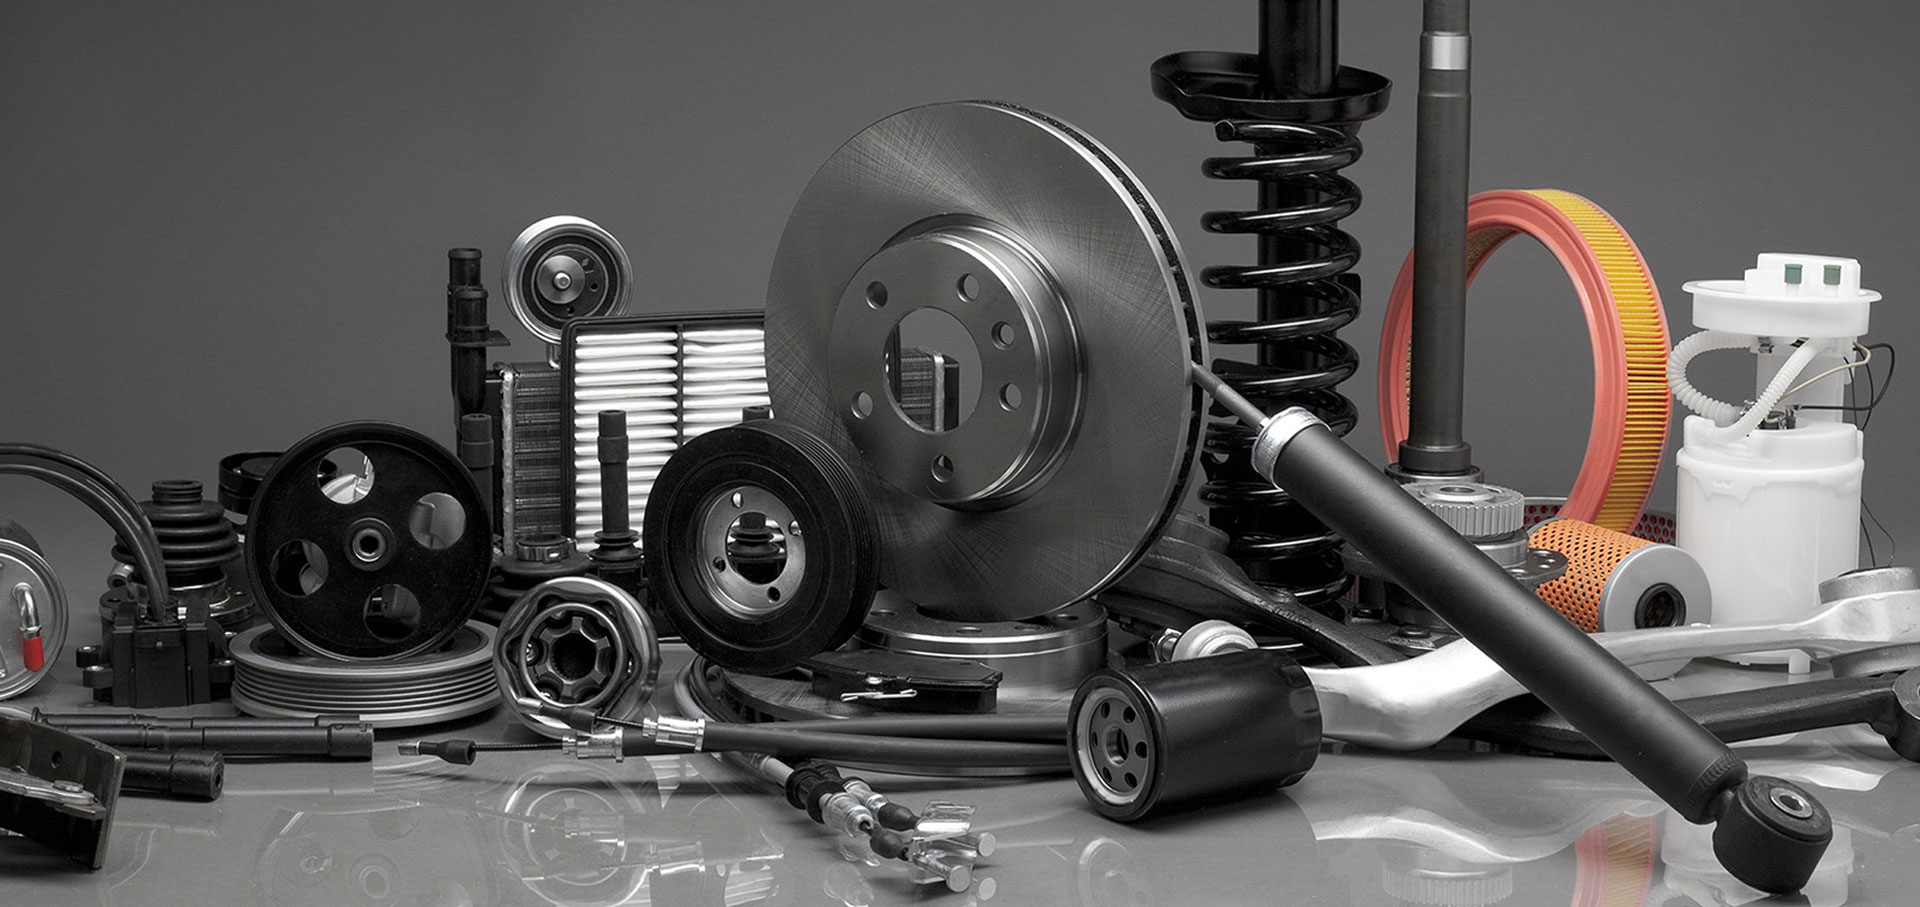 Genuine High Quality Car Parts in Uganda - Seal Auto Spares and Accessories Kampala